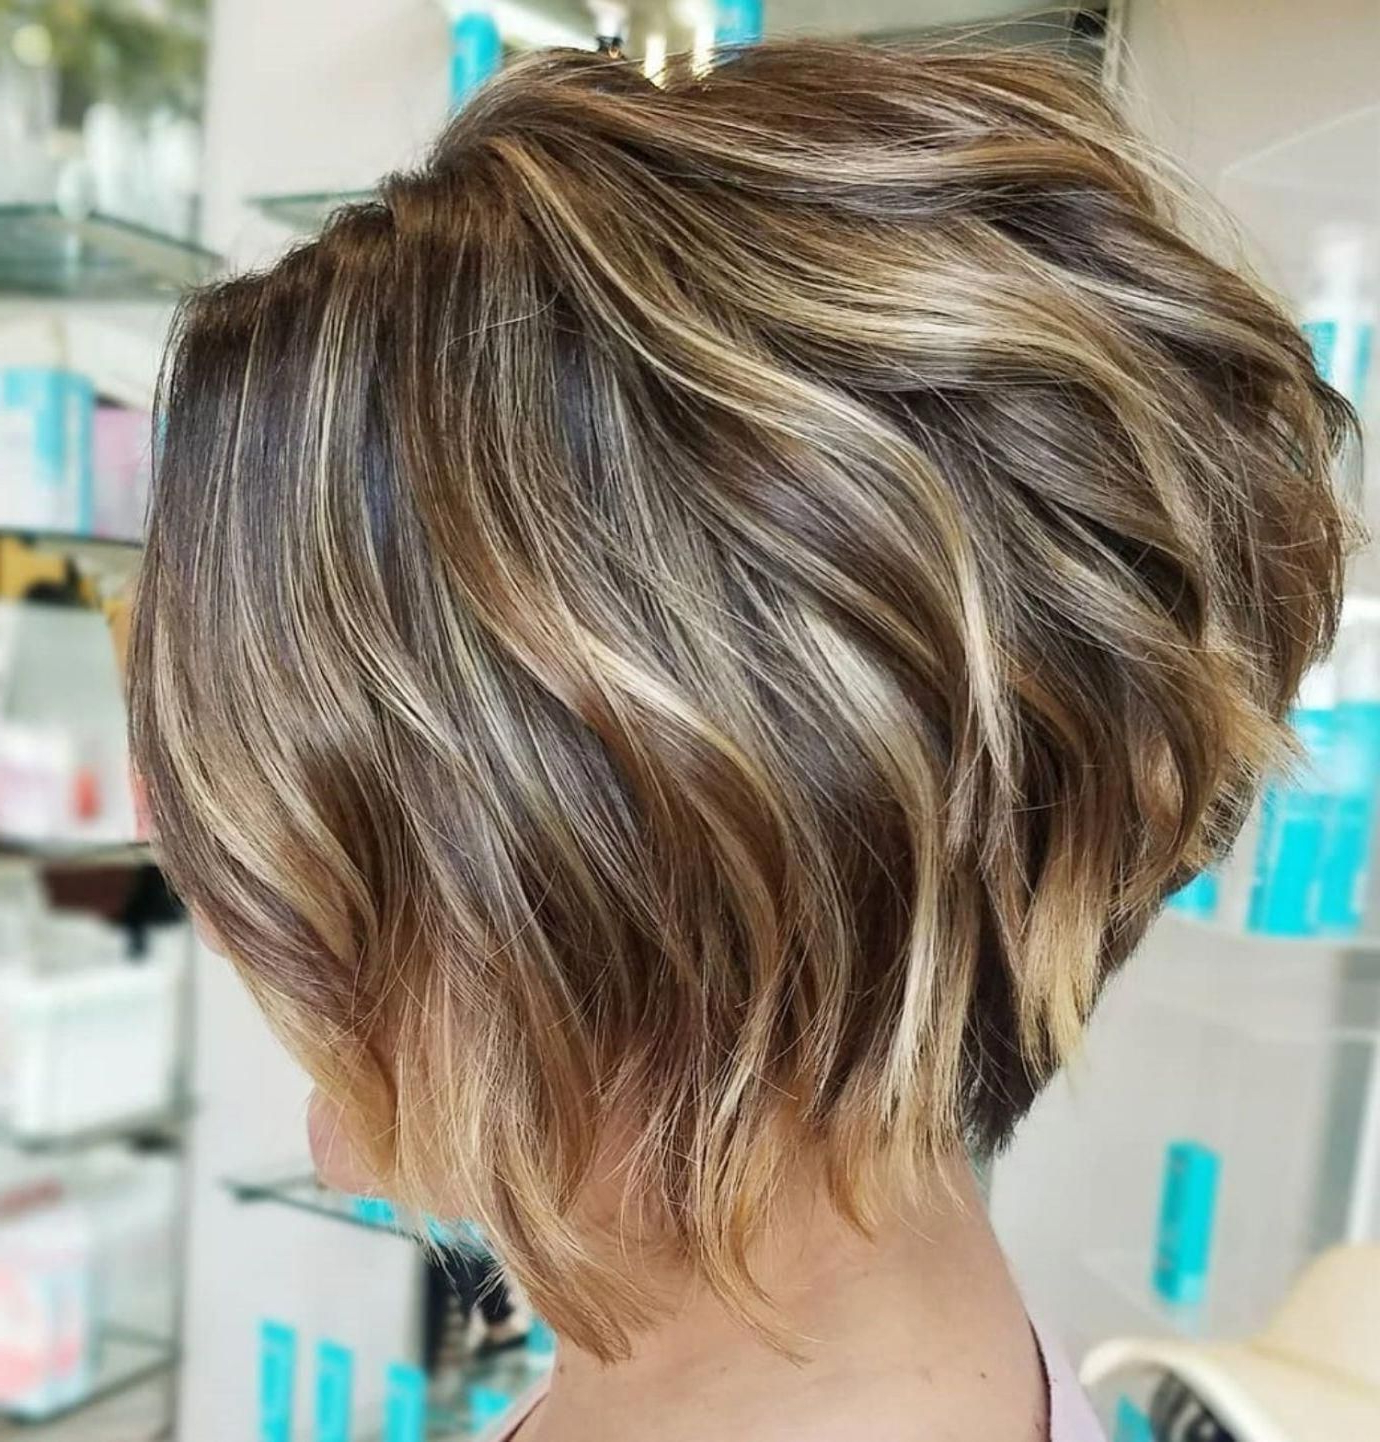 Stacked Wavy Bronde Balayage Bob #shortbobhairstyles For White Blonde Curly Layered Bob Hairstyles (View 2 of 20)